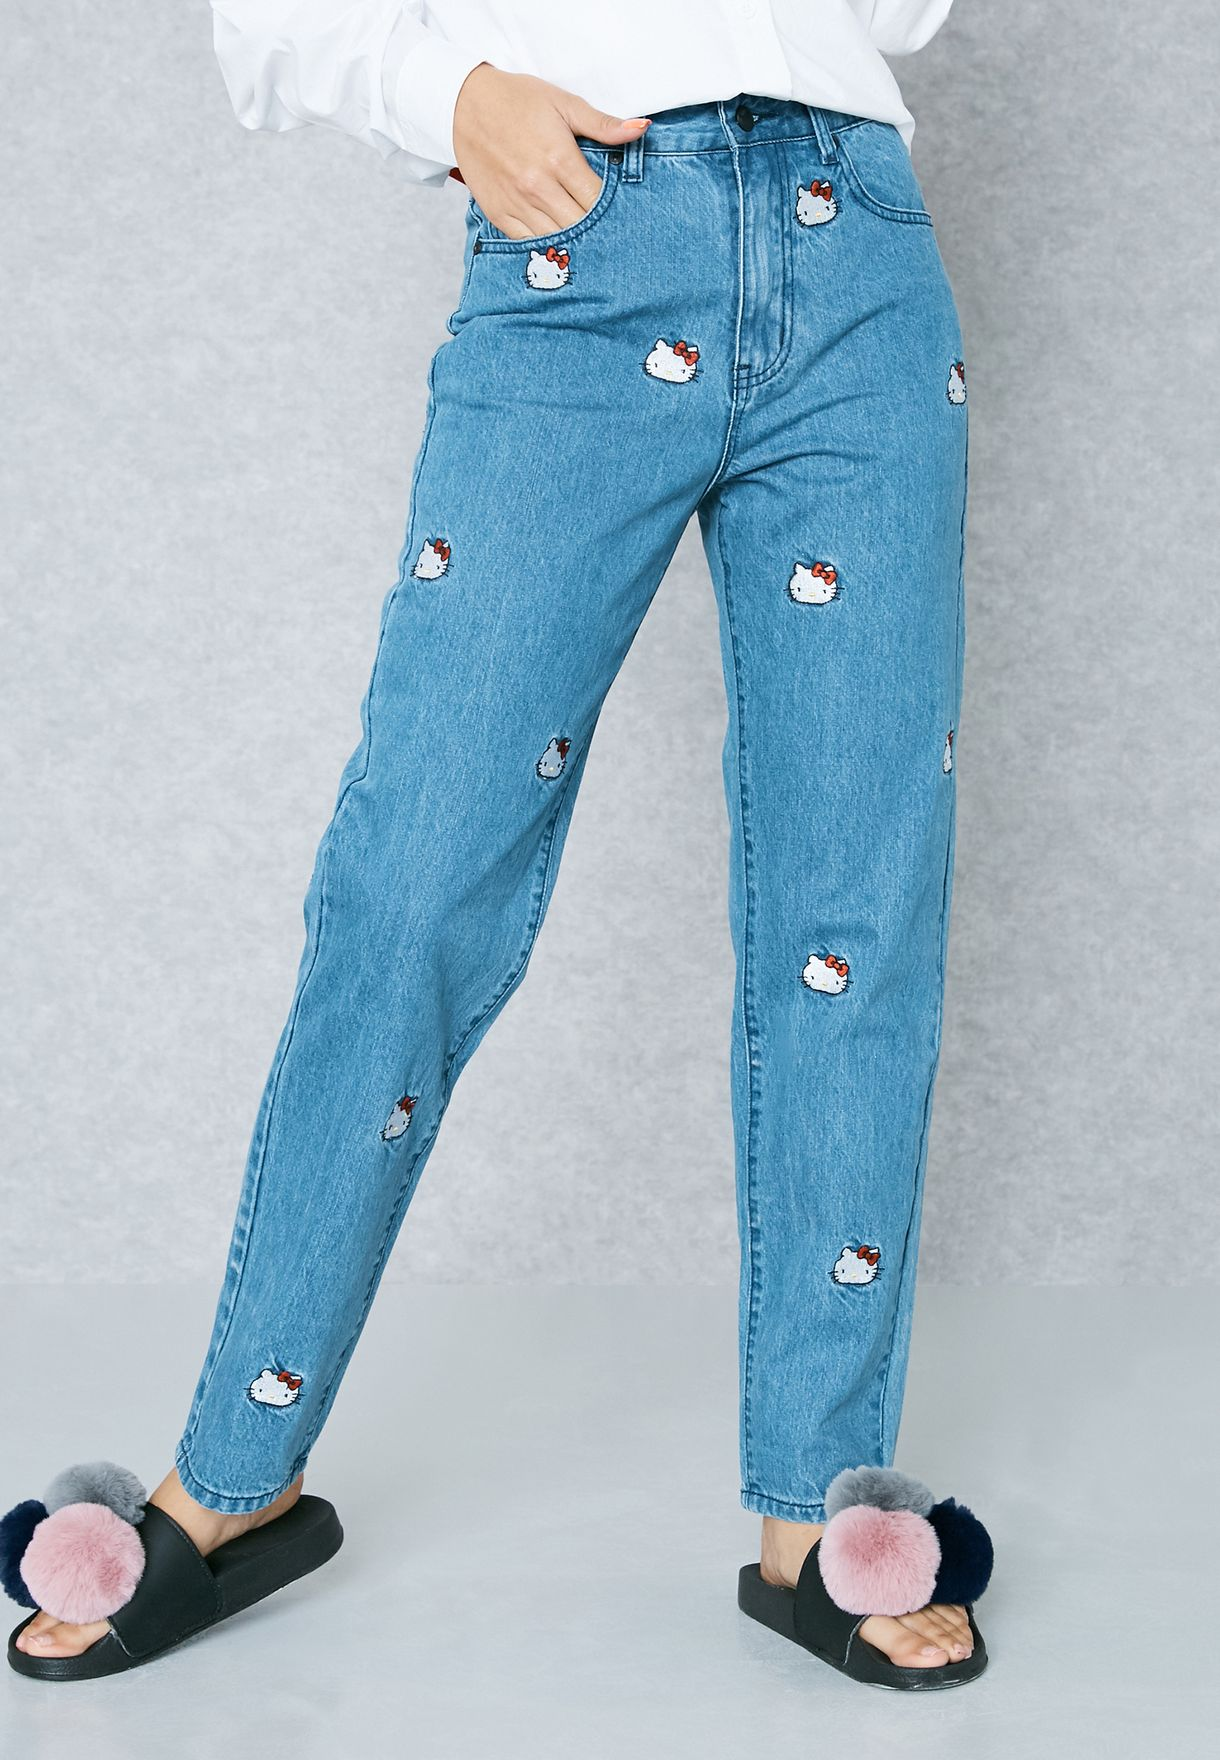 54edafd19 Shop Lazy Oaf blue Hello Kitty Embroidered Jeans HKJEAN for Women in ...